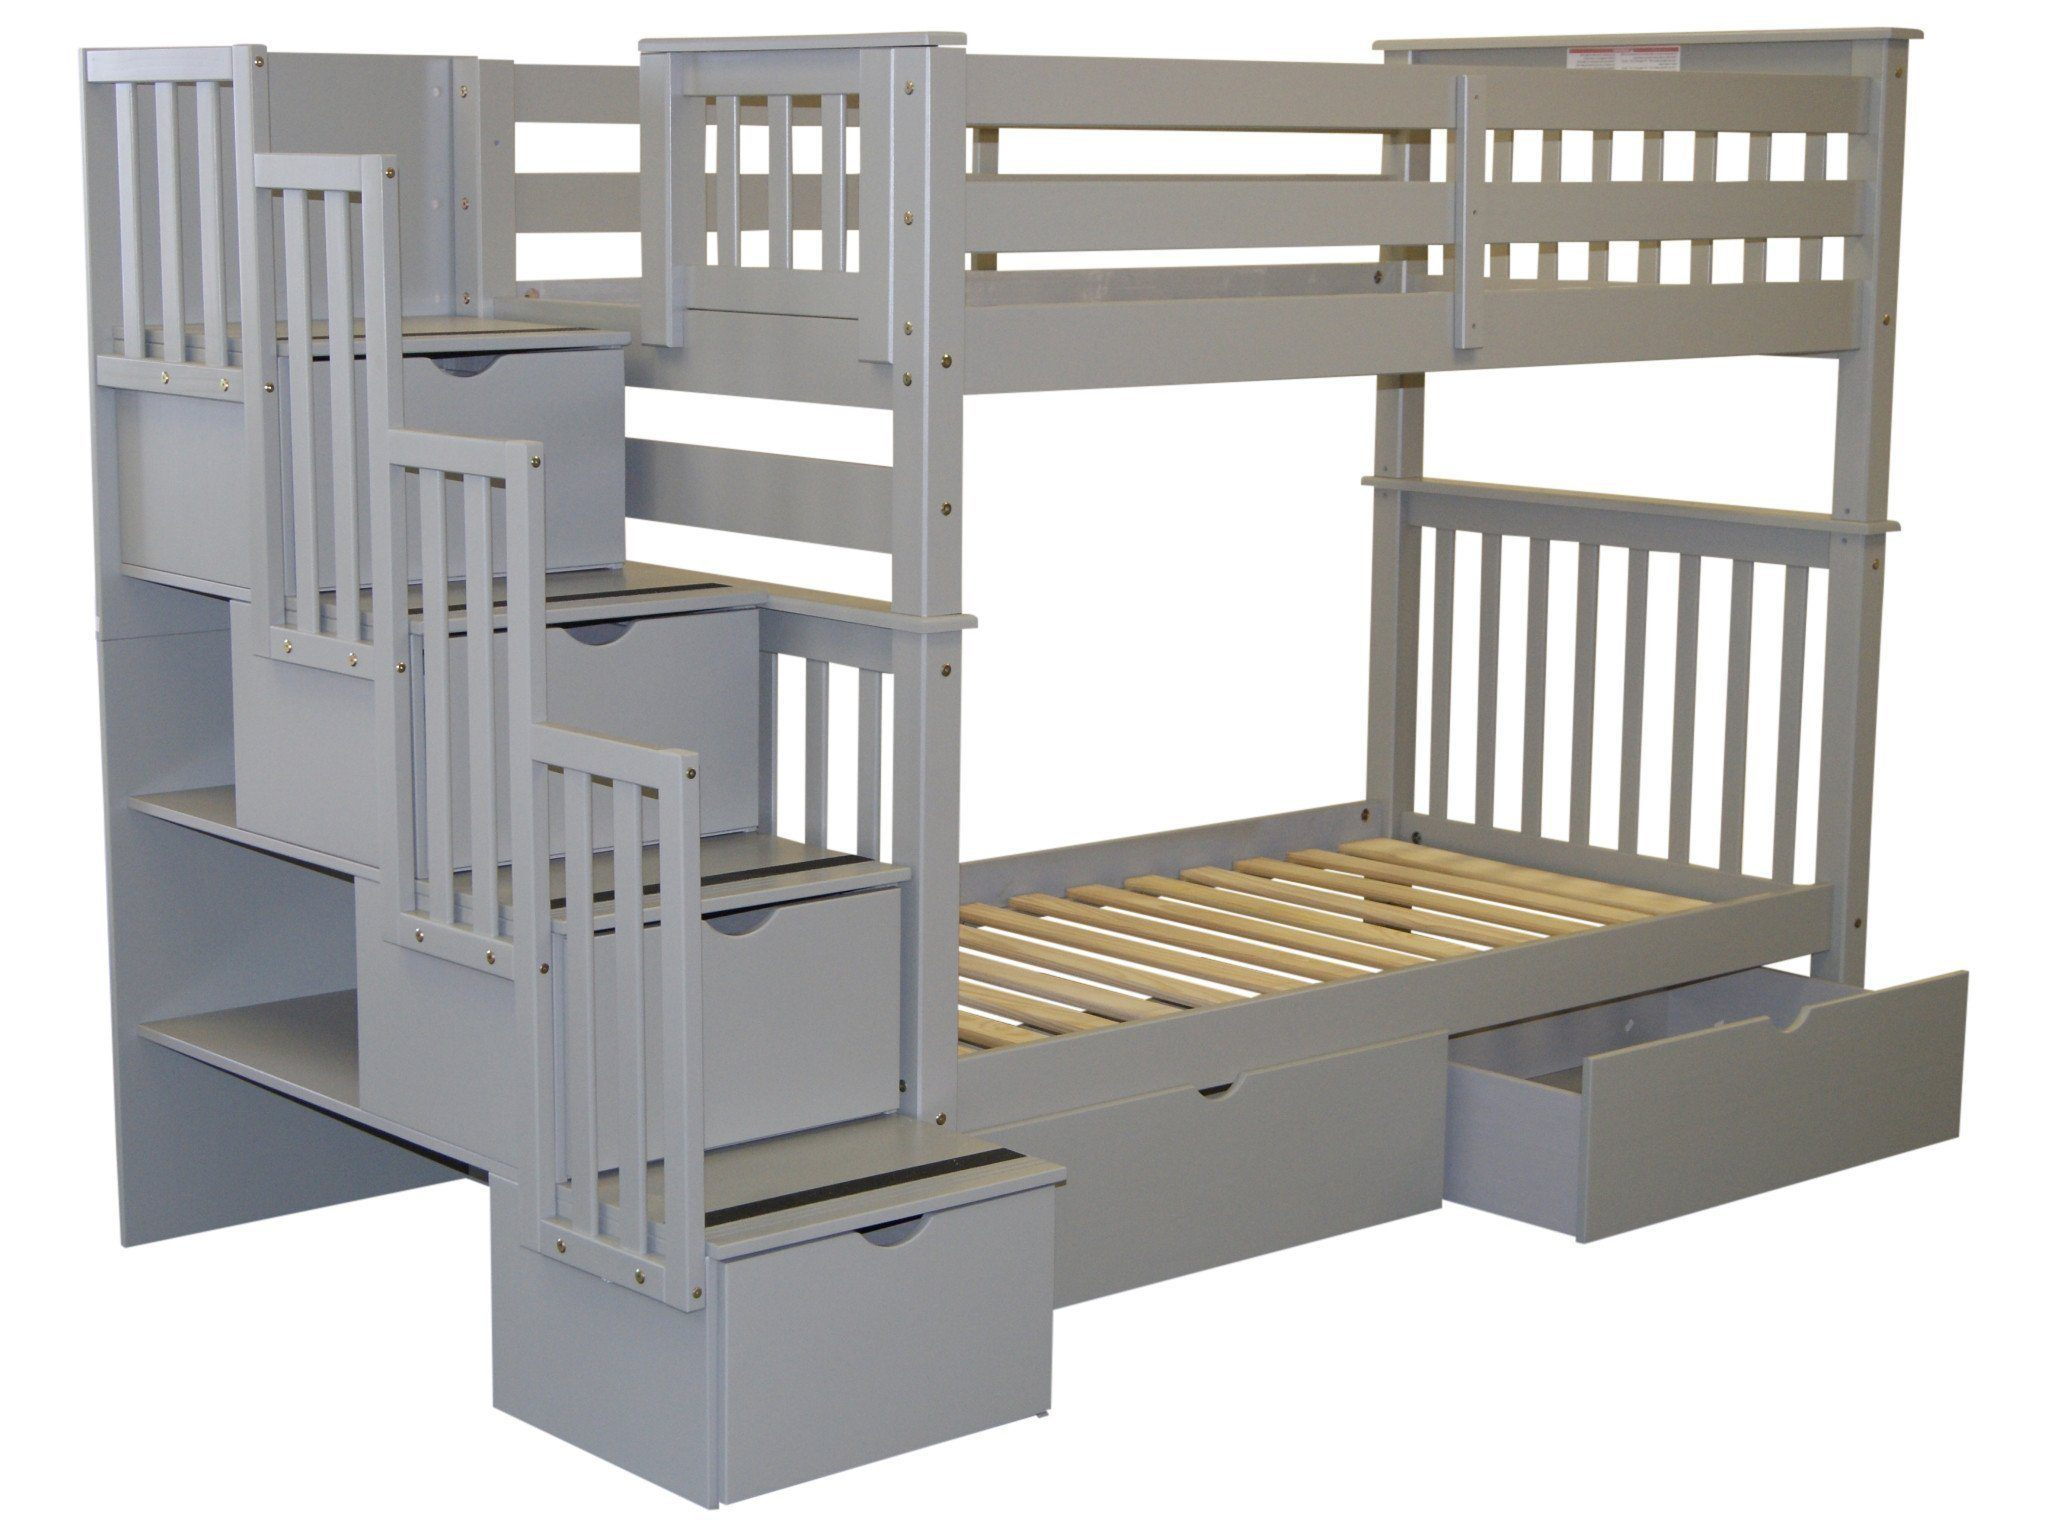 Bedz King Bunk Beds Twin Over Twin Stairway 4 Step 2 Bed Drawers